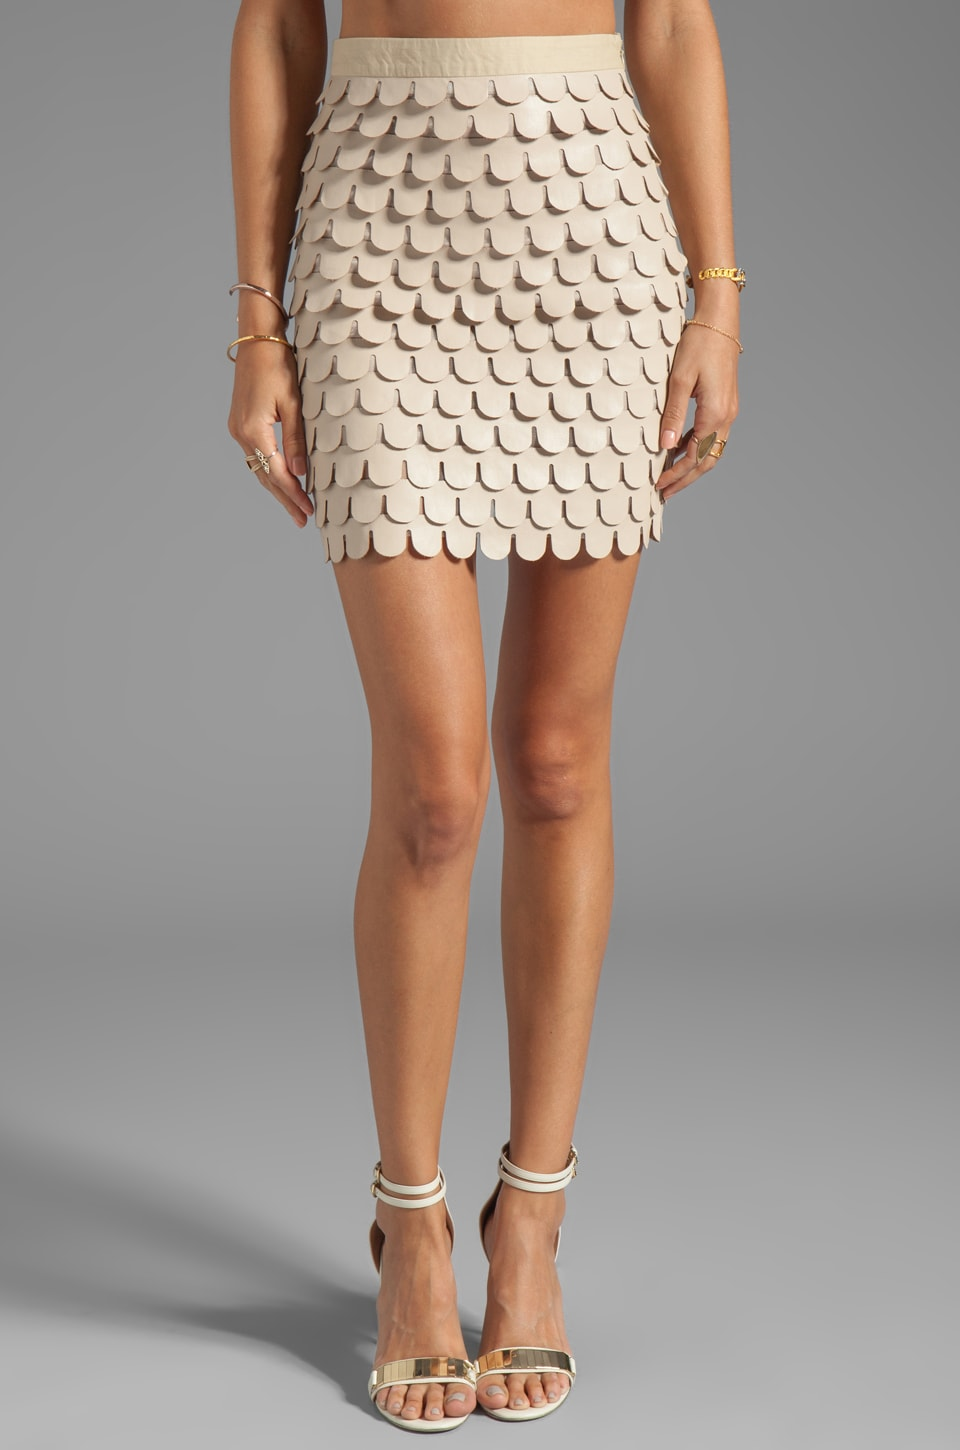 BLAQUE LABEL Faux Leather Skirt in Tan | REVOLVE